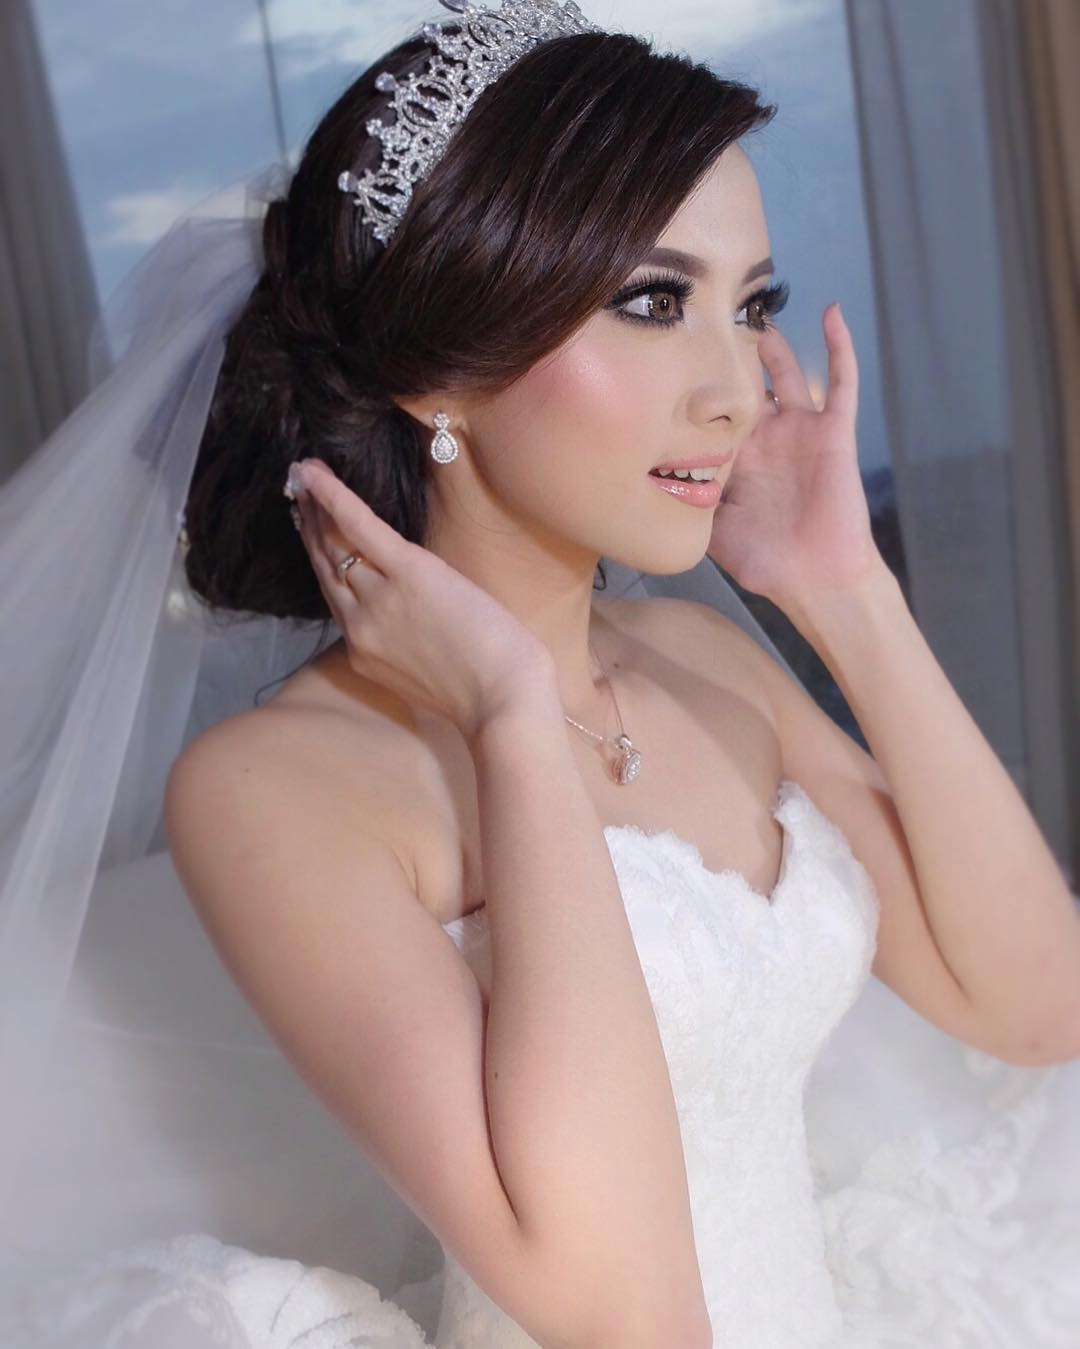 Adele Makeup Artist Jakarta Cartooncreative Co